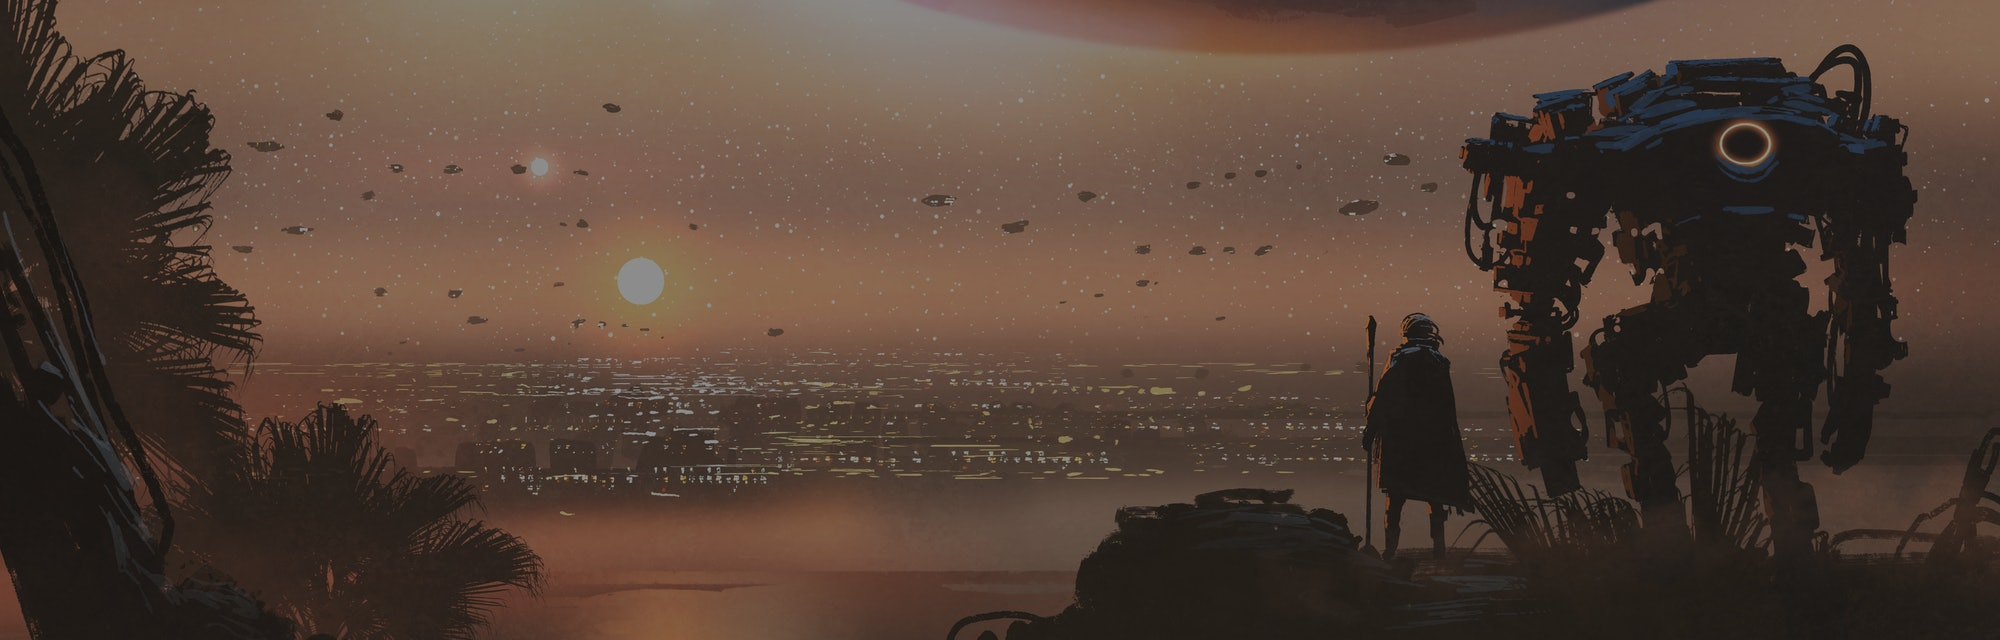 journey concept showing a man with robot looking at a new colony in the alien planet, digital art st...